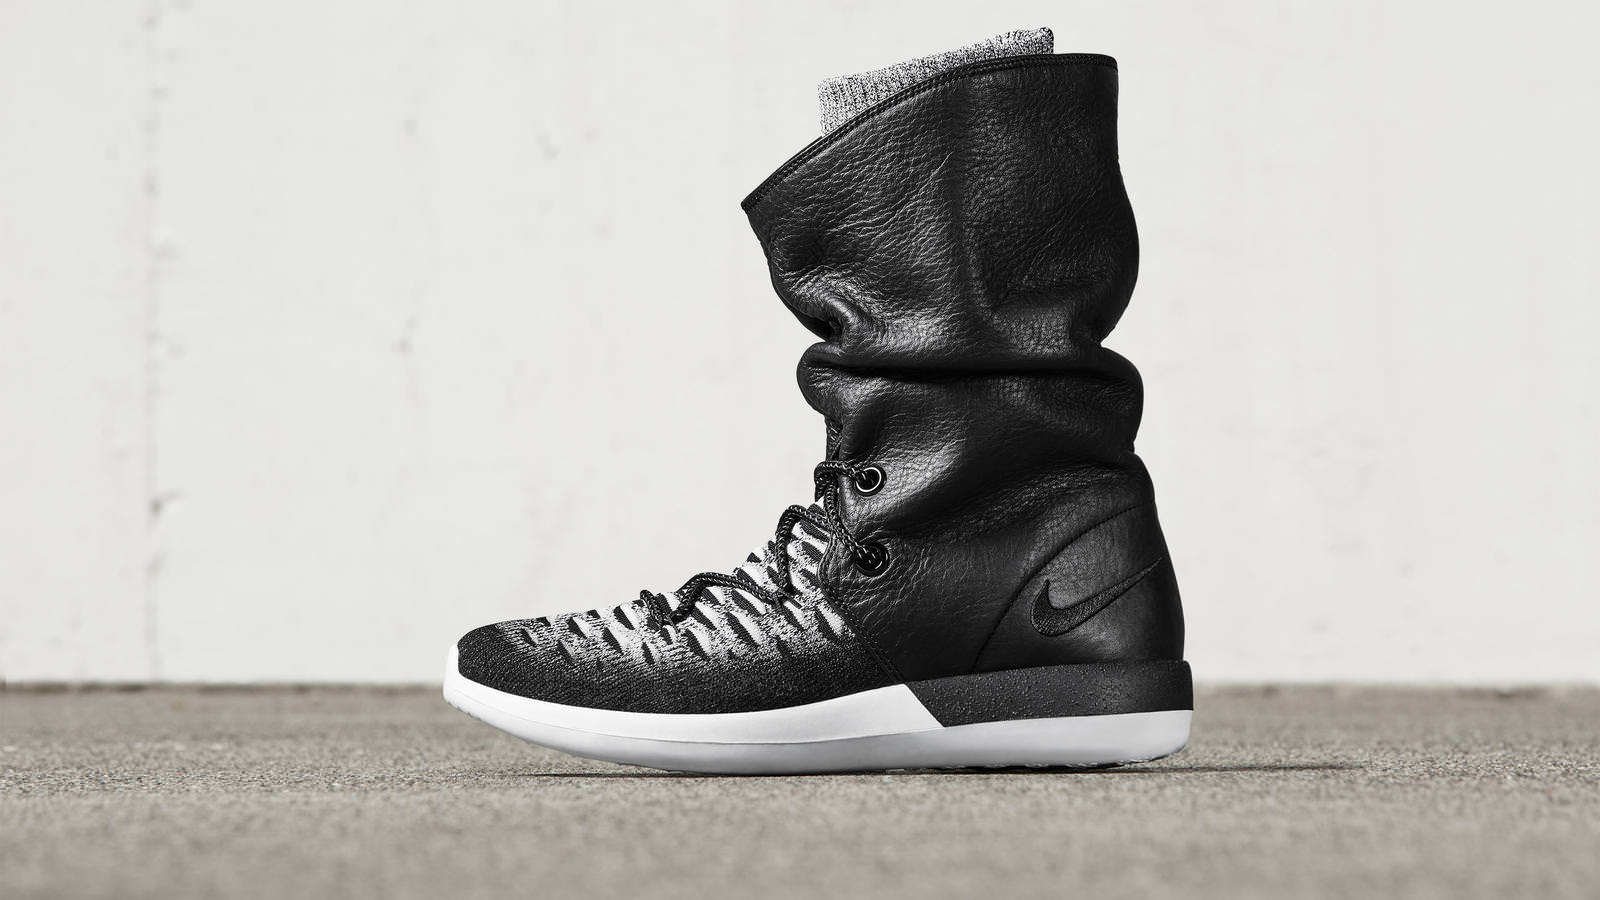 581948c1c5fddf0f70aae2cf_161026_footwear_sneakerboot_p_0079r_hd_1600